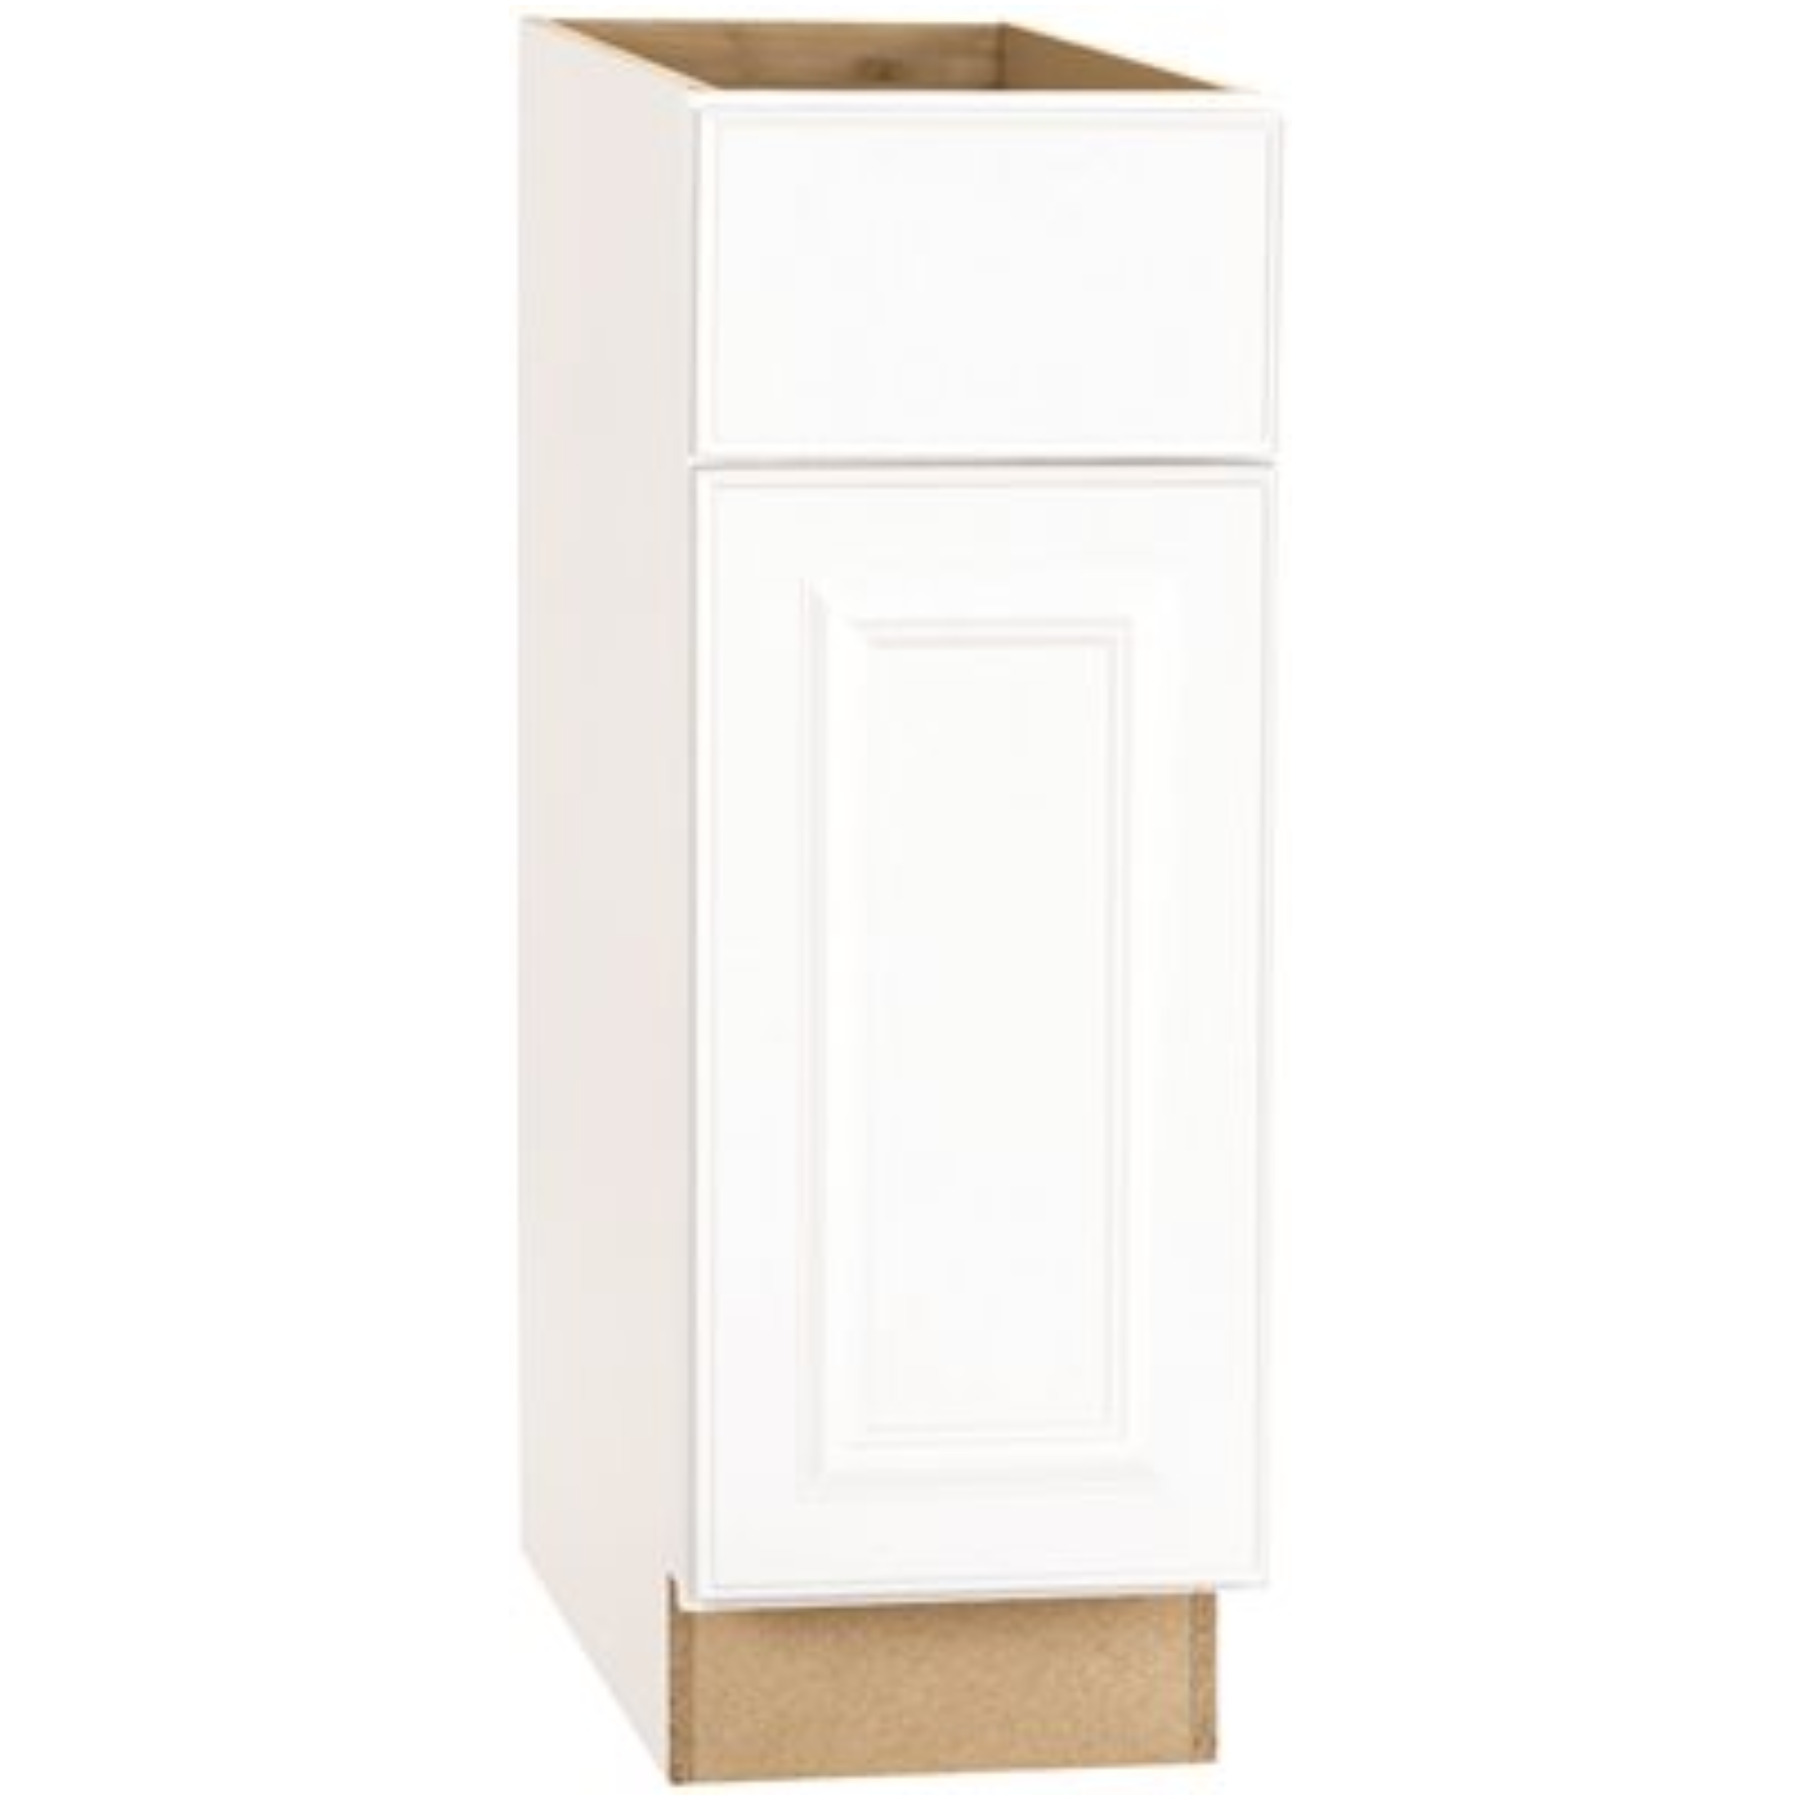 RSI HOME PRODUCTS HAMILTON BASE CABINET, FULLY ASSEMBLED, RAISED PANEL, WHITE, 9X34-1/2X24 IN.